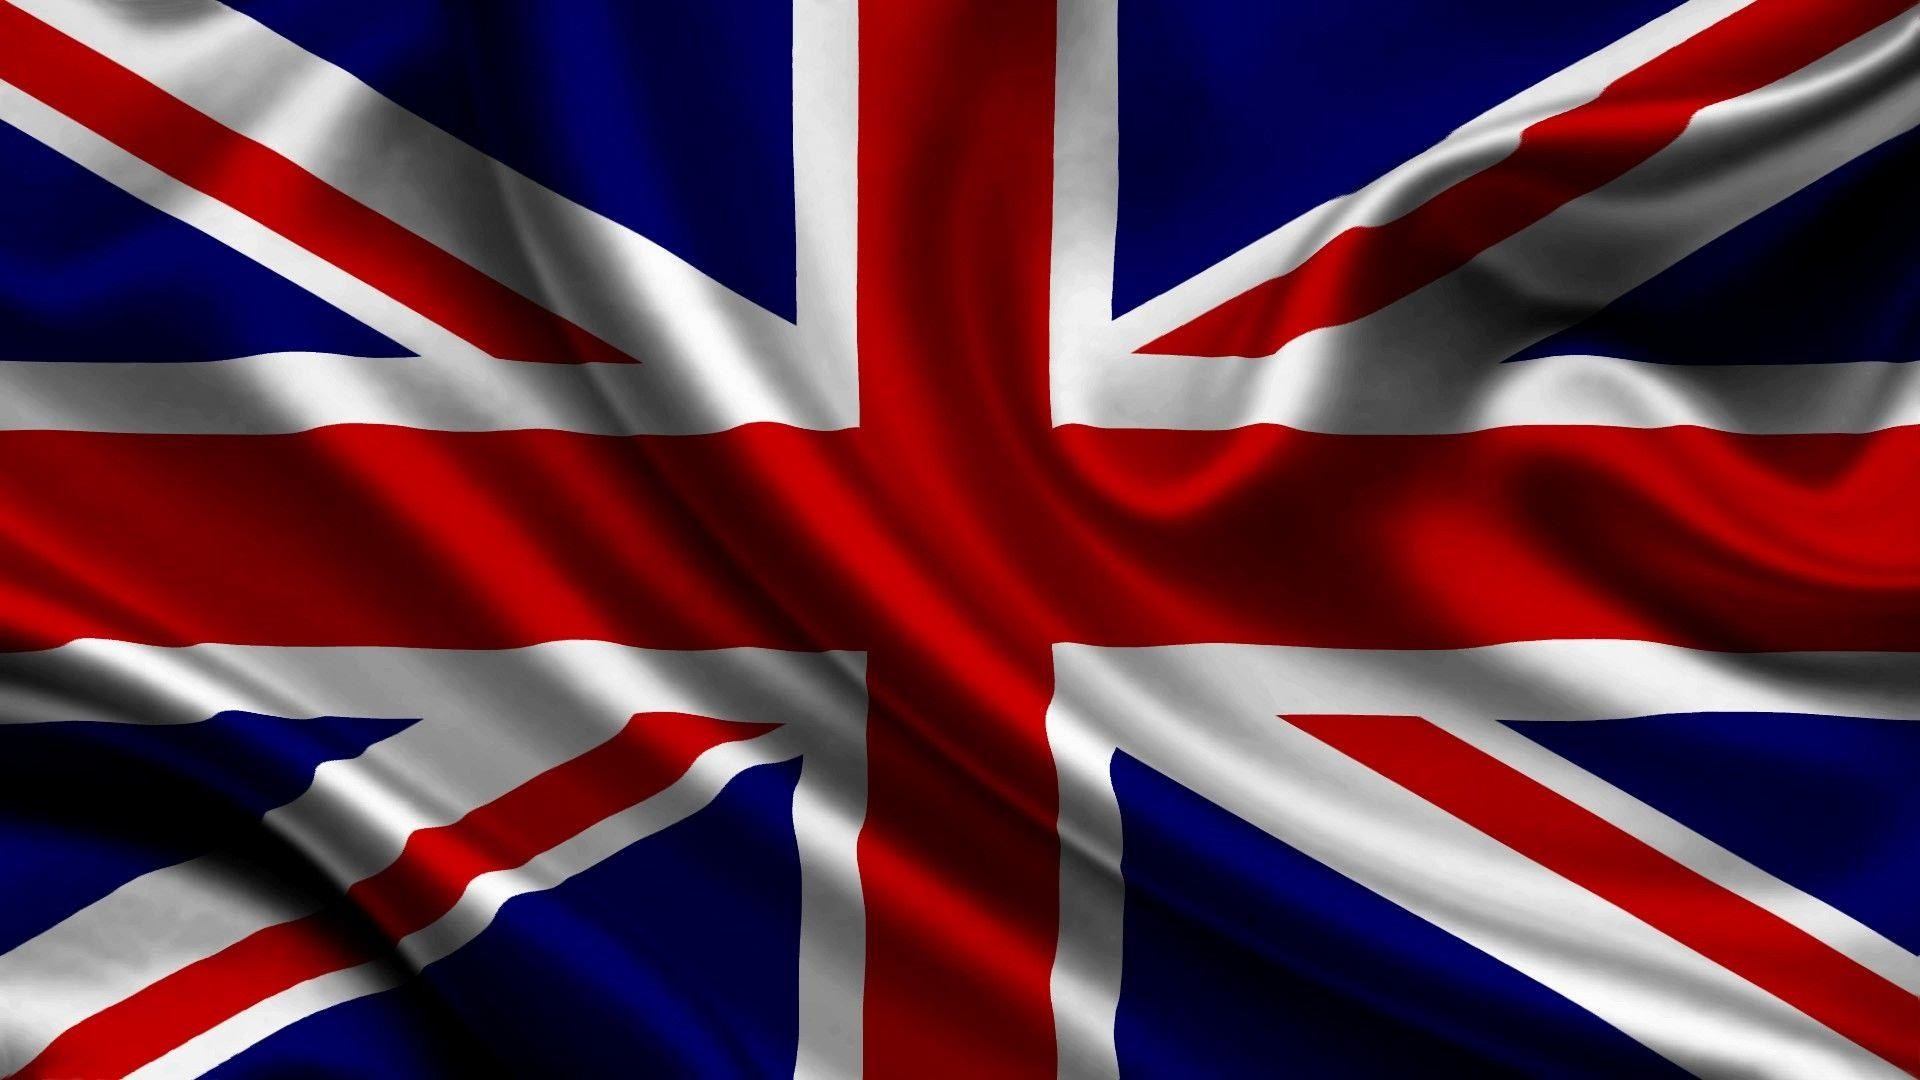 1920x1080 England-Bans-Its-Own-Flag-to-Avoid-Offending-